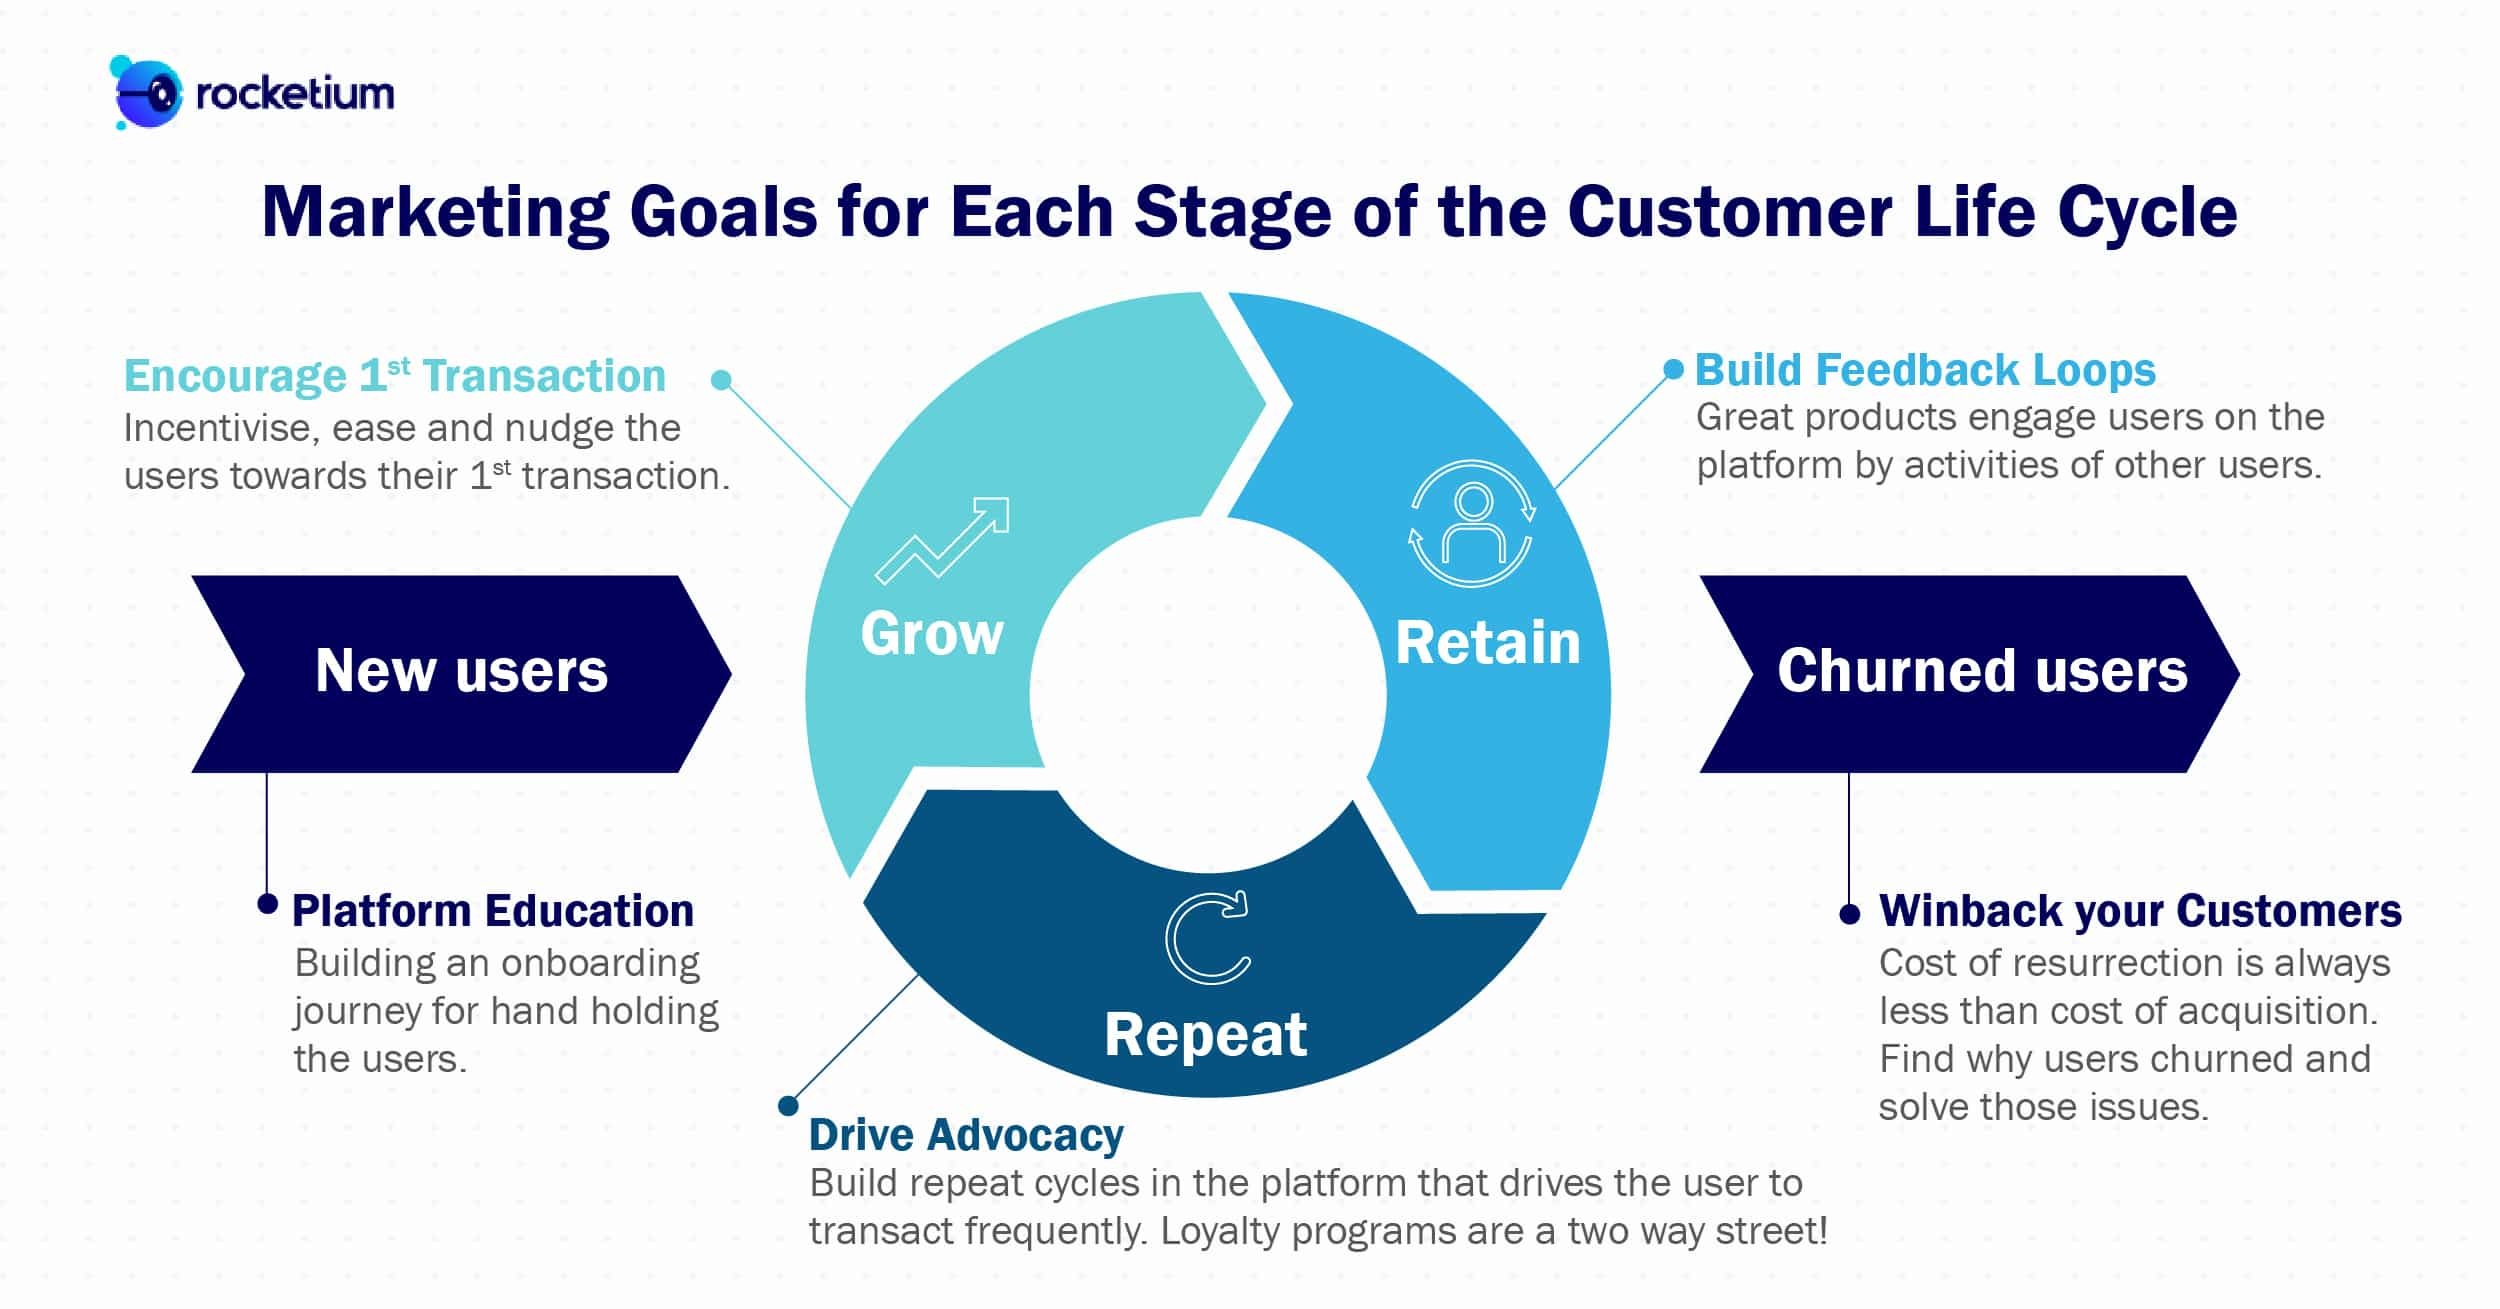 Conversion optimization by contextual targeting based on marketing goals